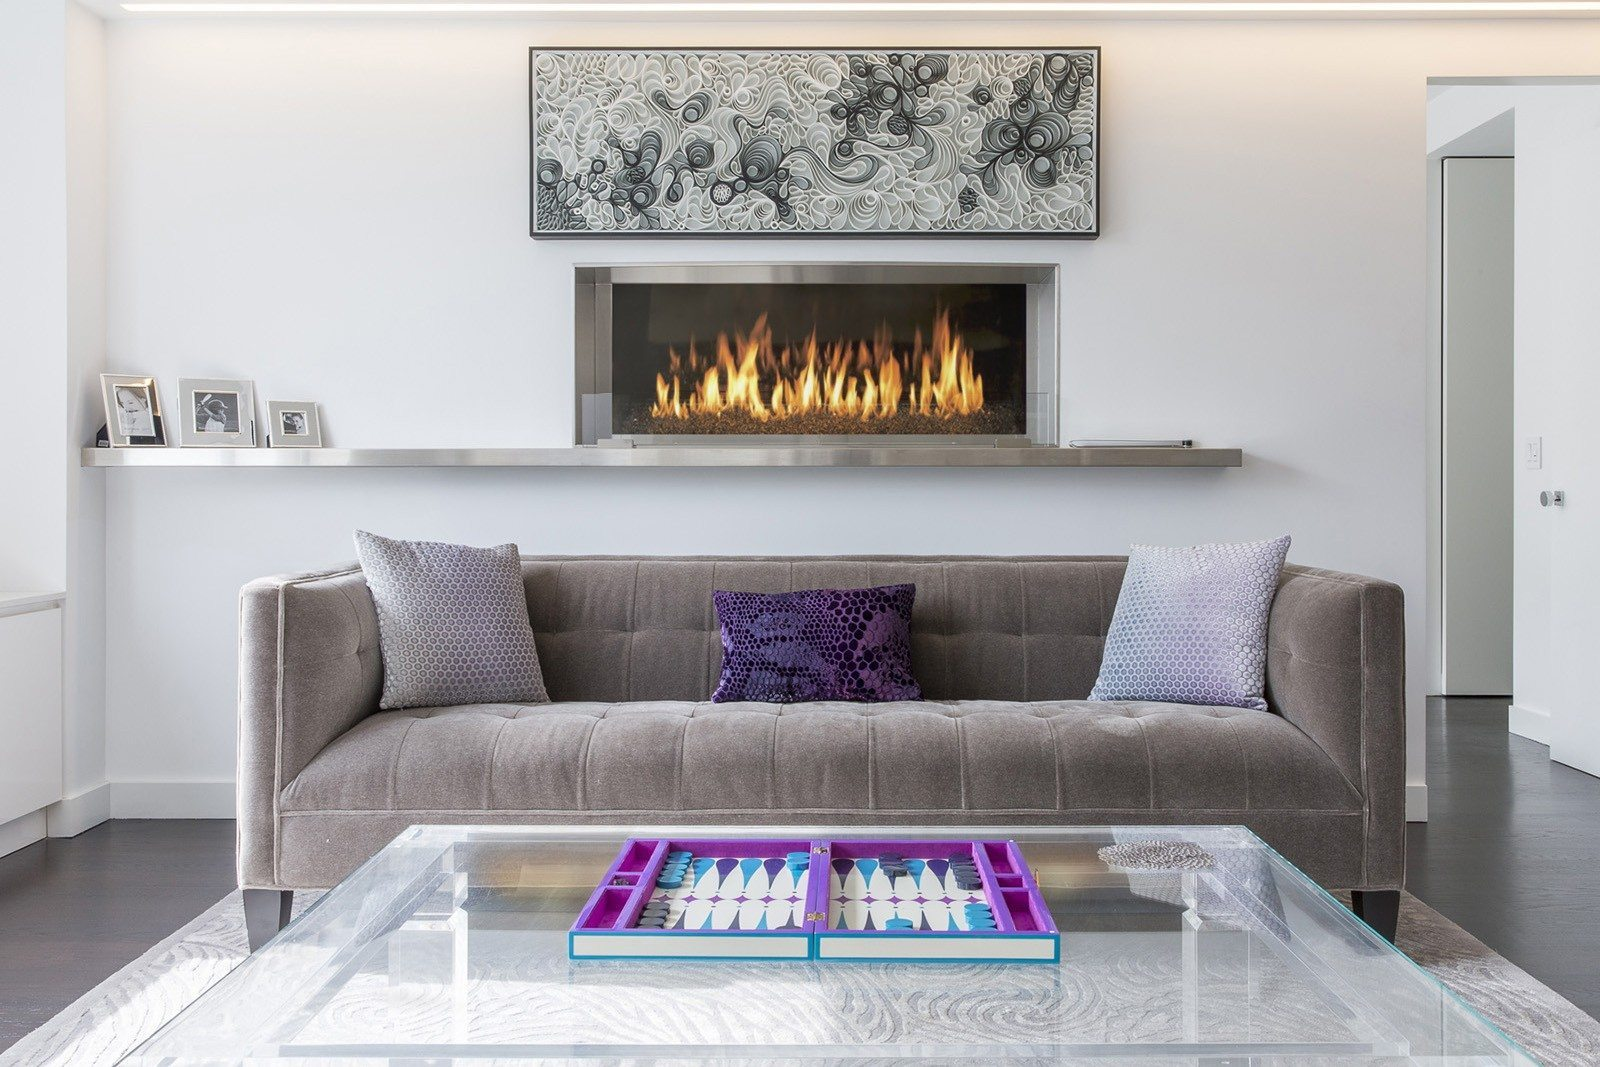 Living Room Furniture and Fireplace Ideas 2017. Practical Fashion. Built-in electric hearth looks like a picture at the wall